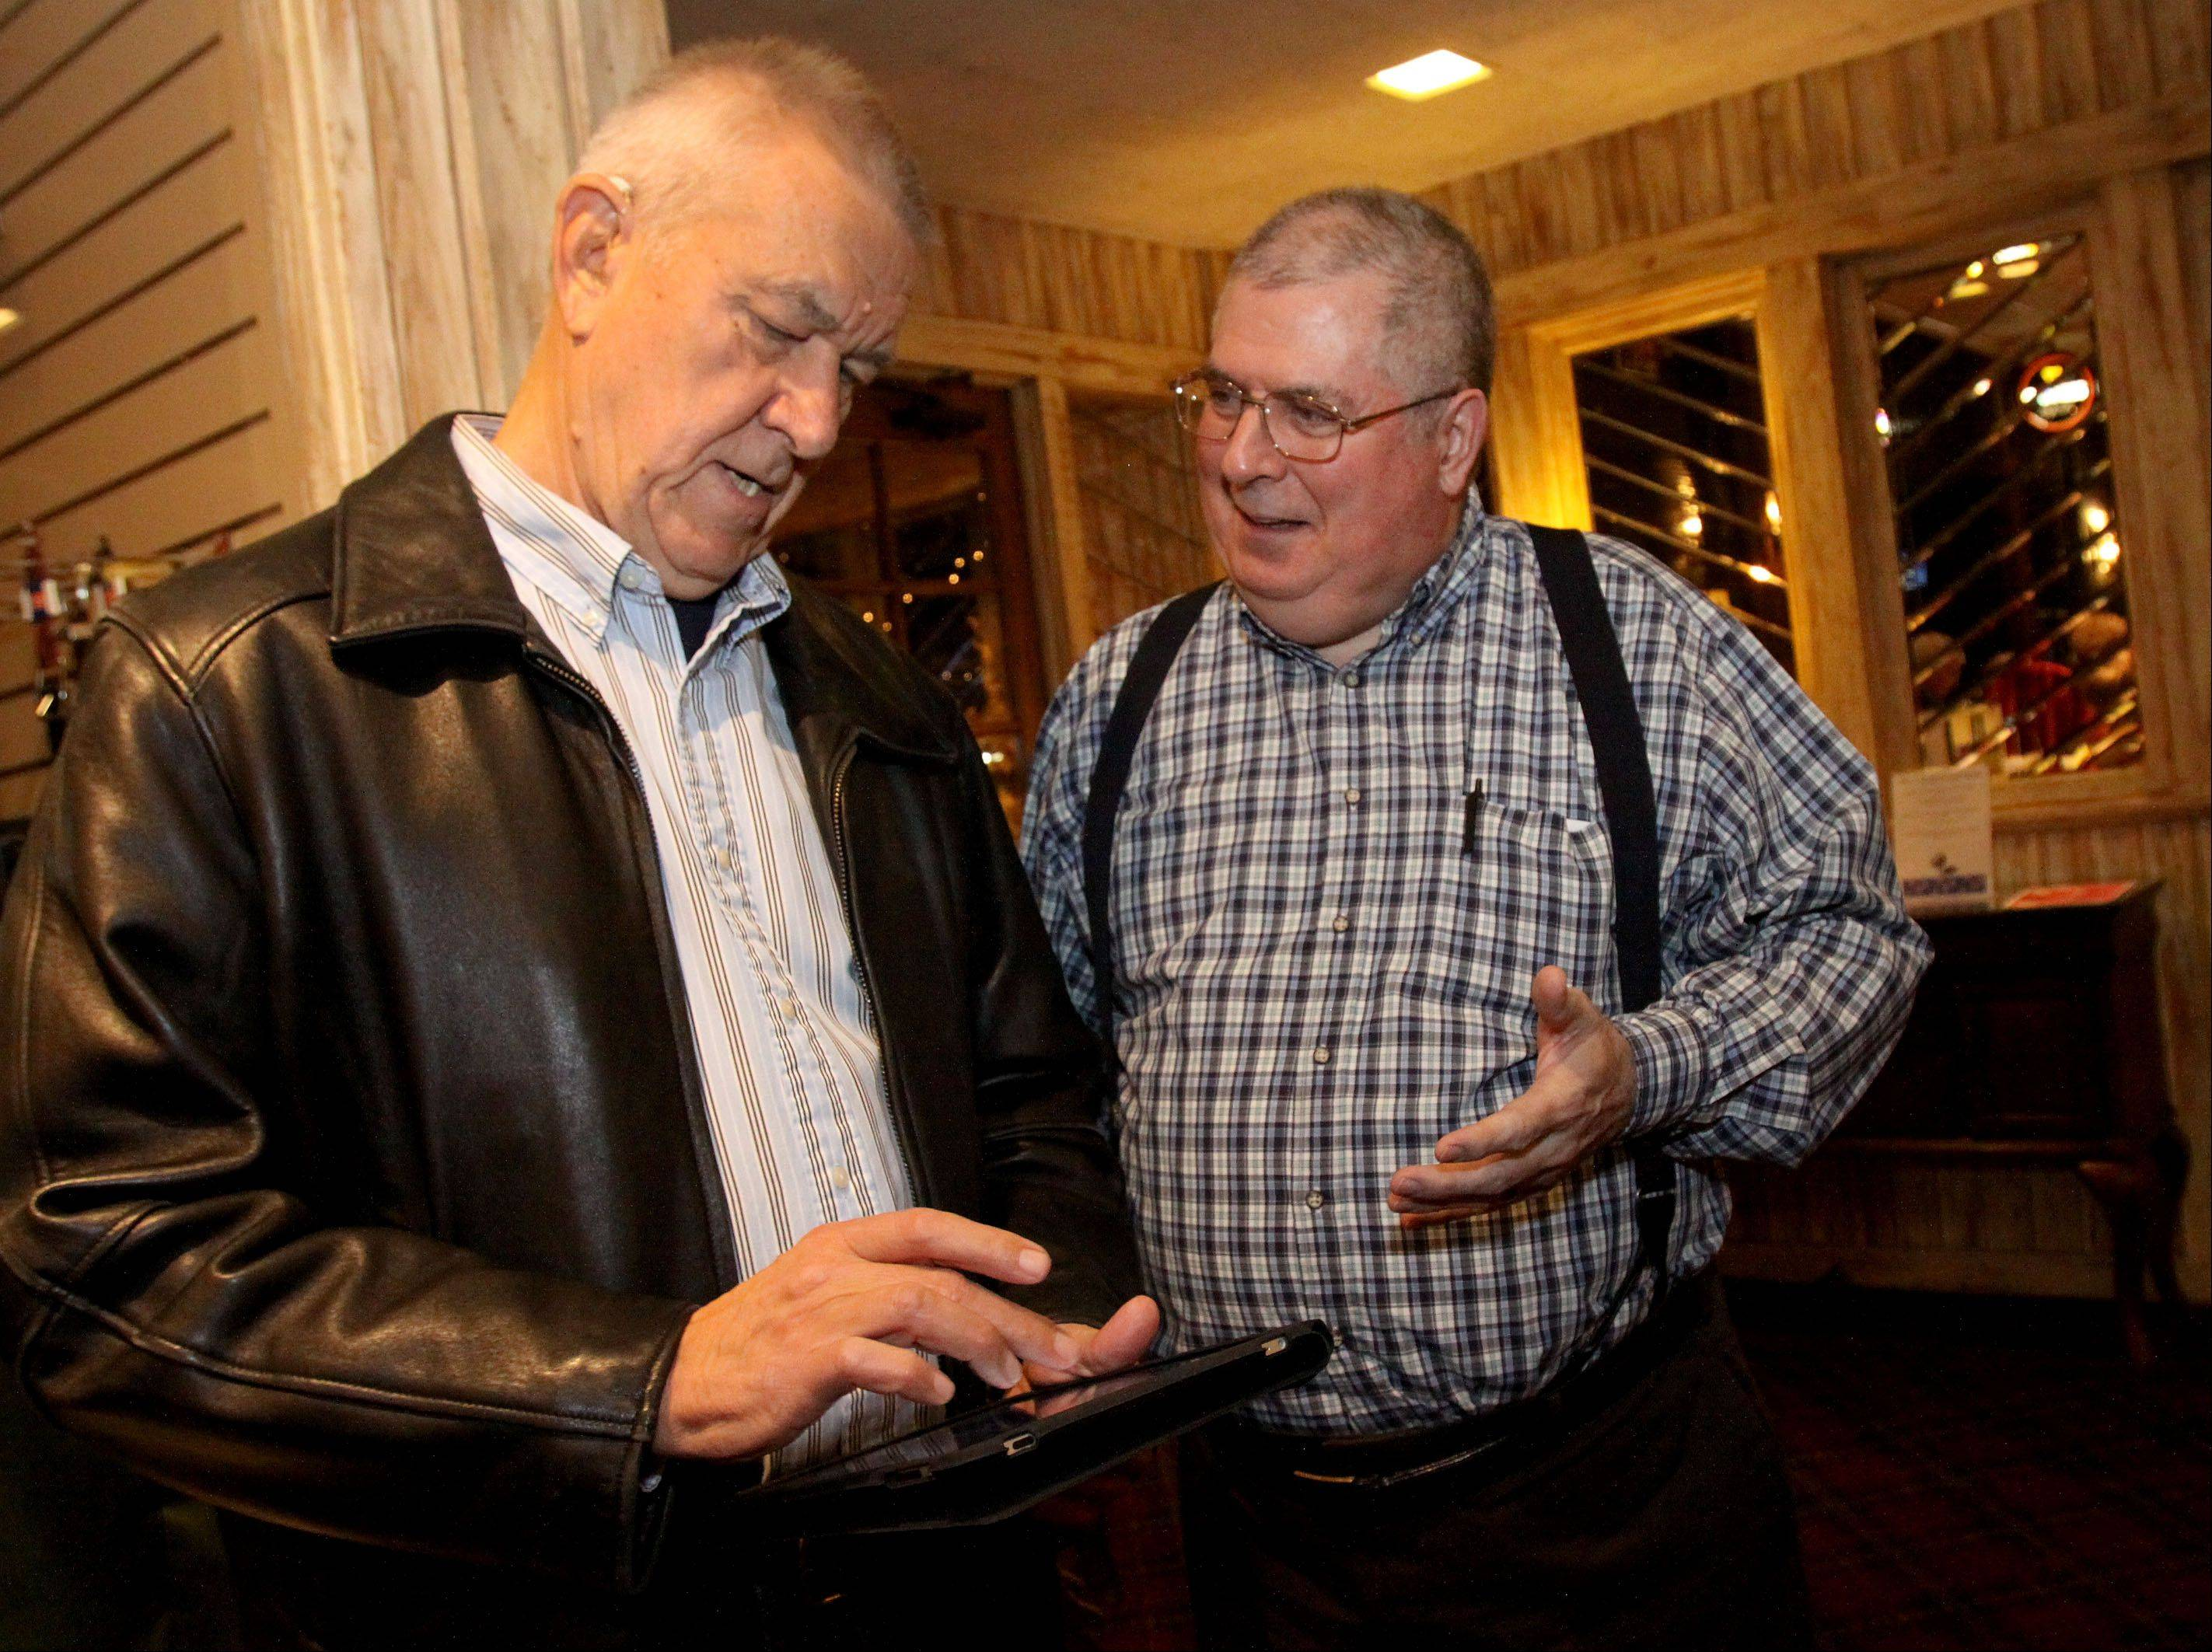 Wayne Woodward, mayoral candidate for West Chicago, right, looks for early results with Ed Petka, left, on Tuesday in West Chicago.